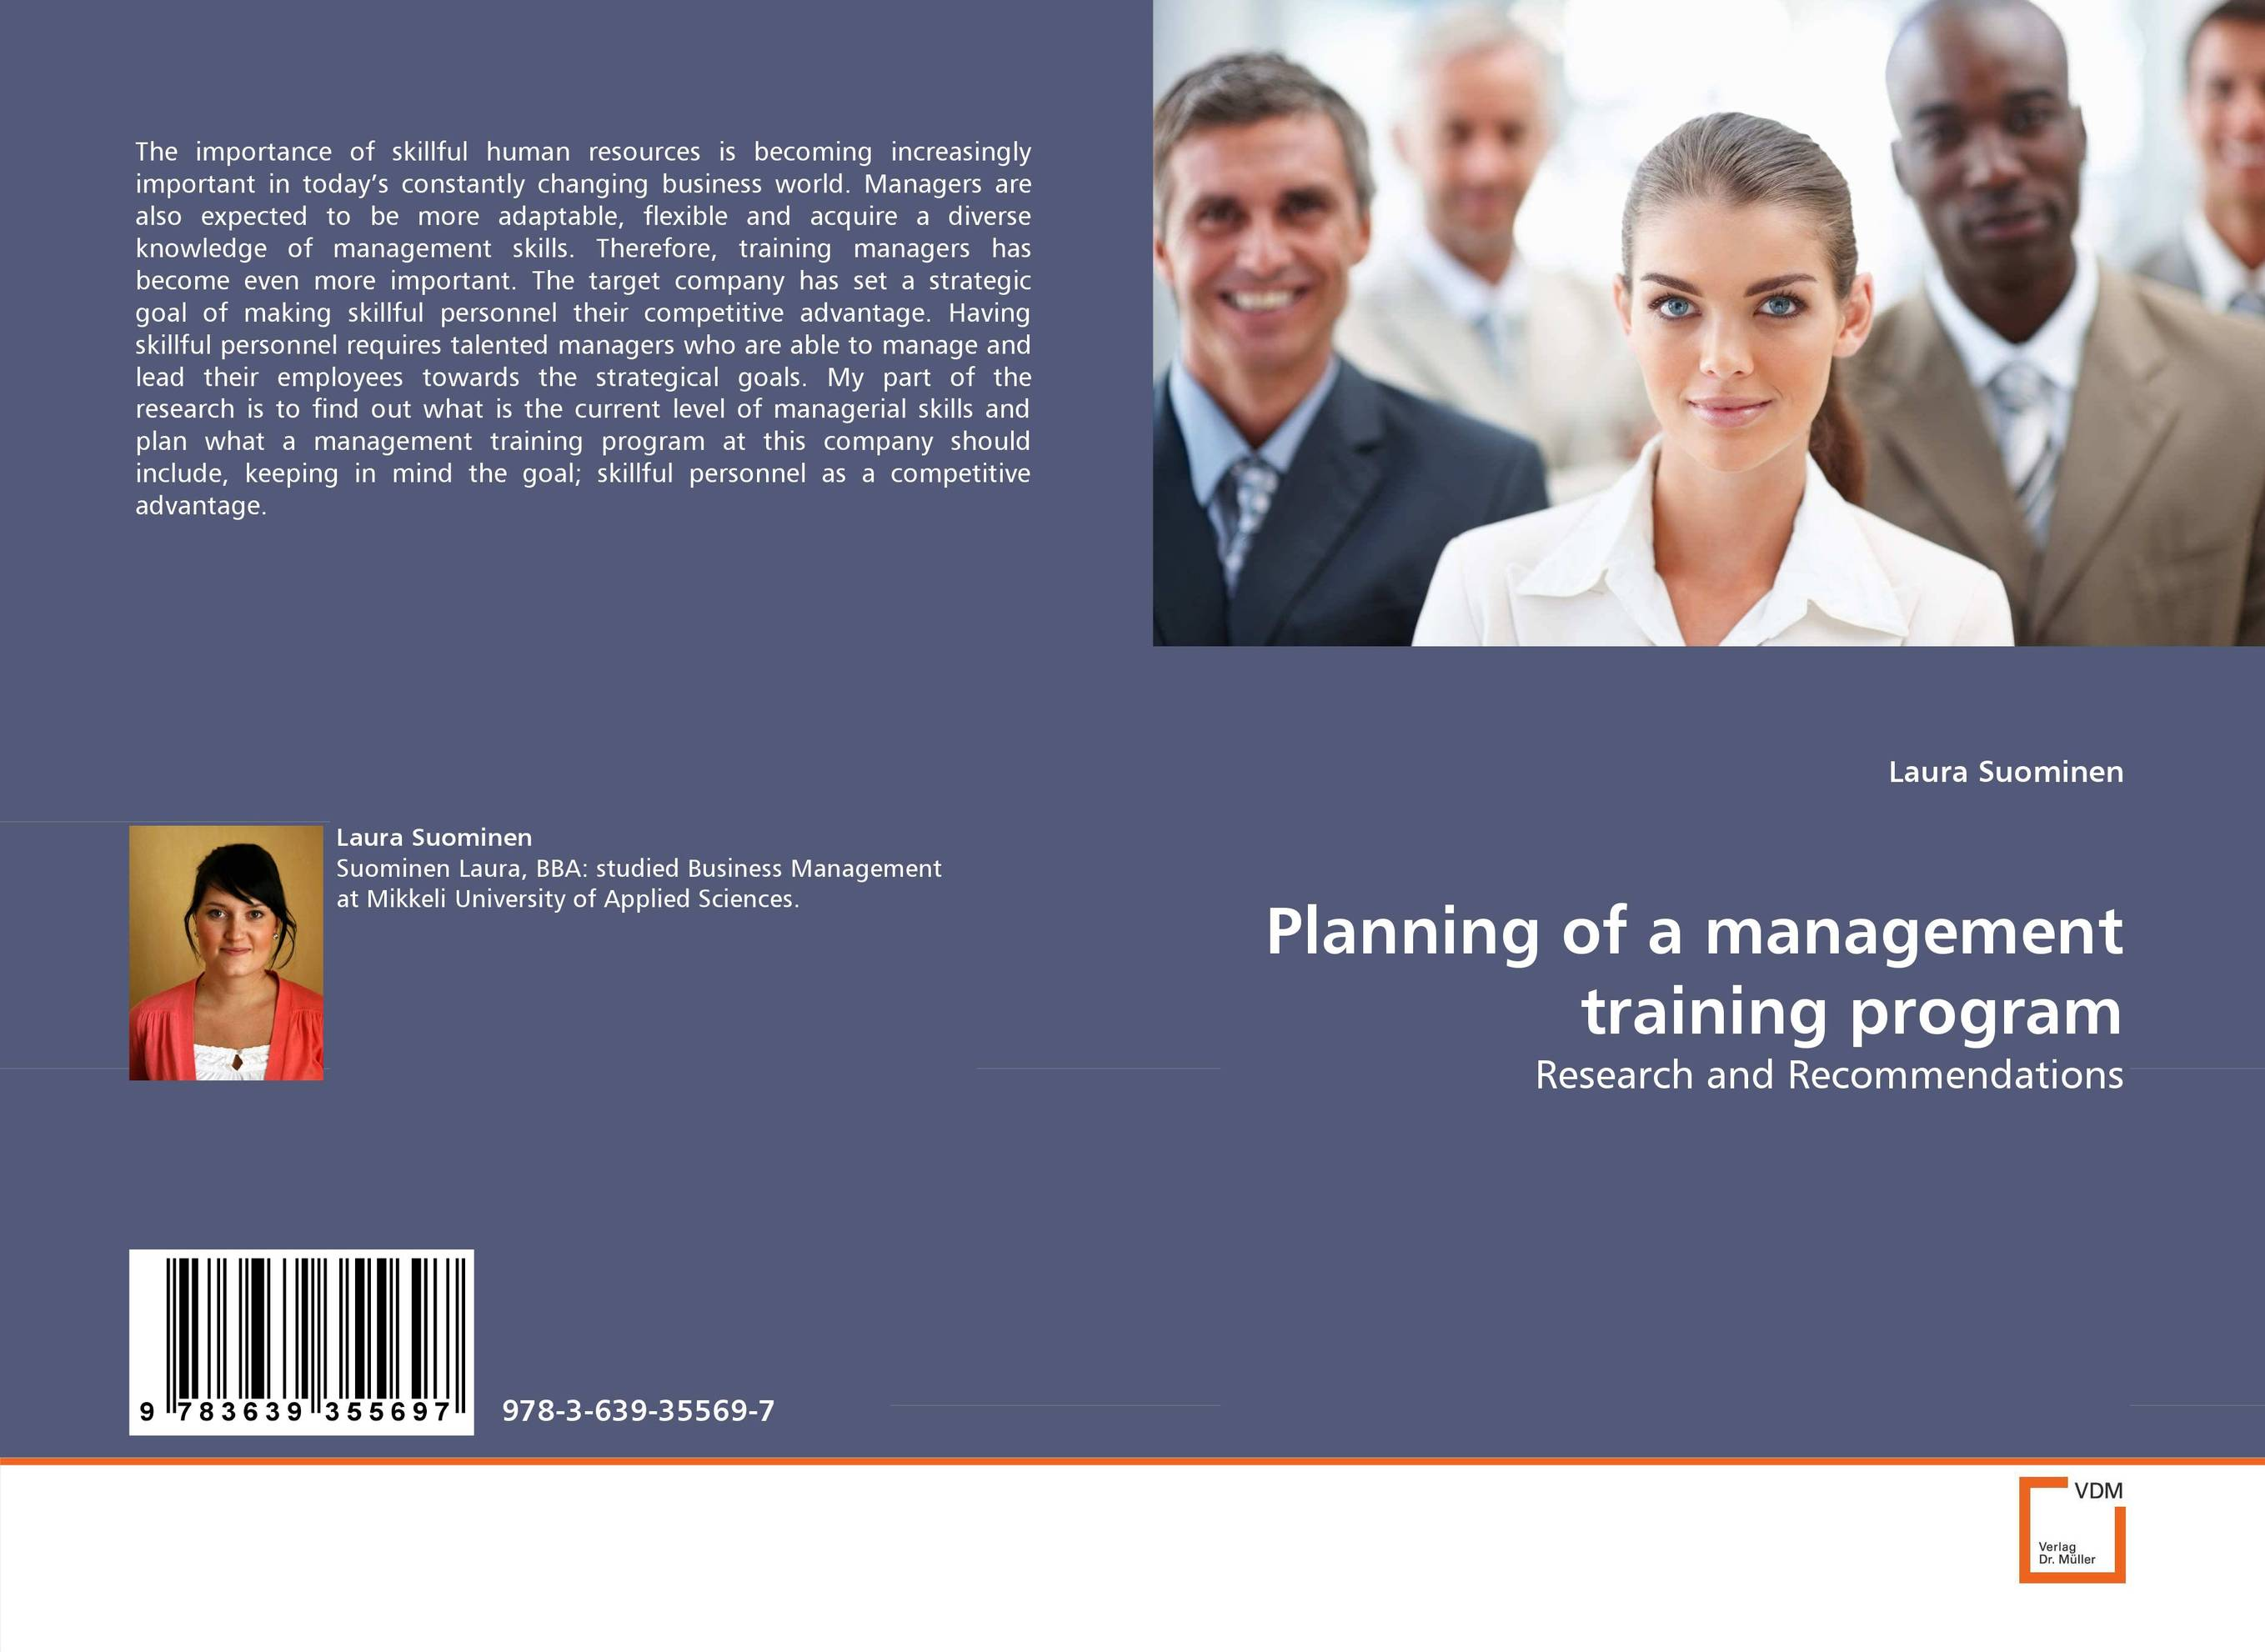 Planning of a management training program seena sharp competitive intelligence advantage how to minimize risk avoid surprises and grow your business in a changing world